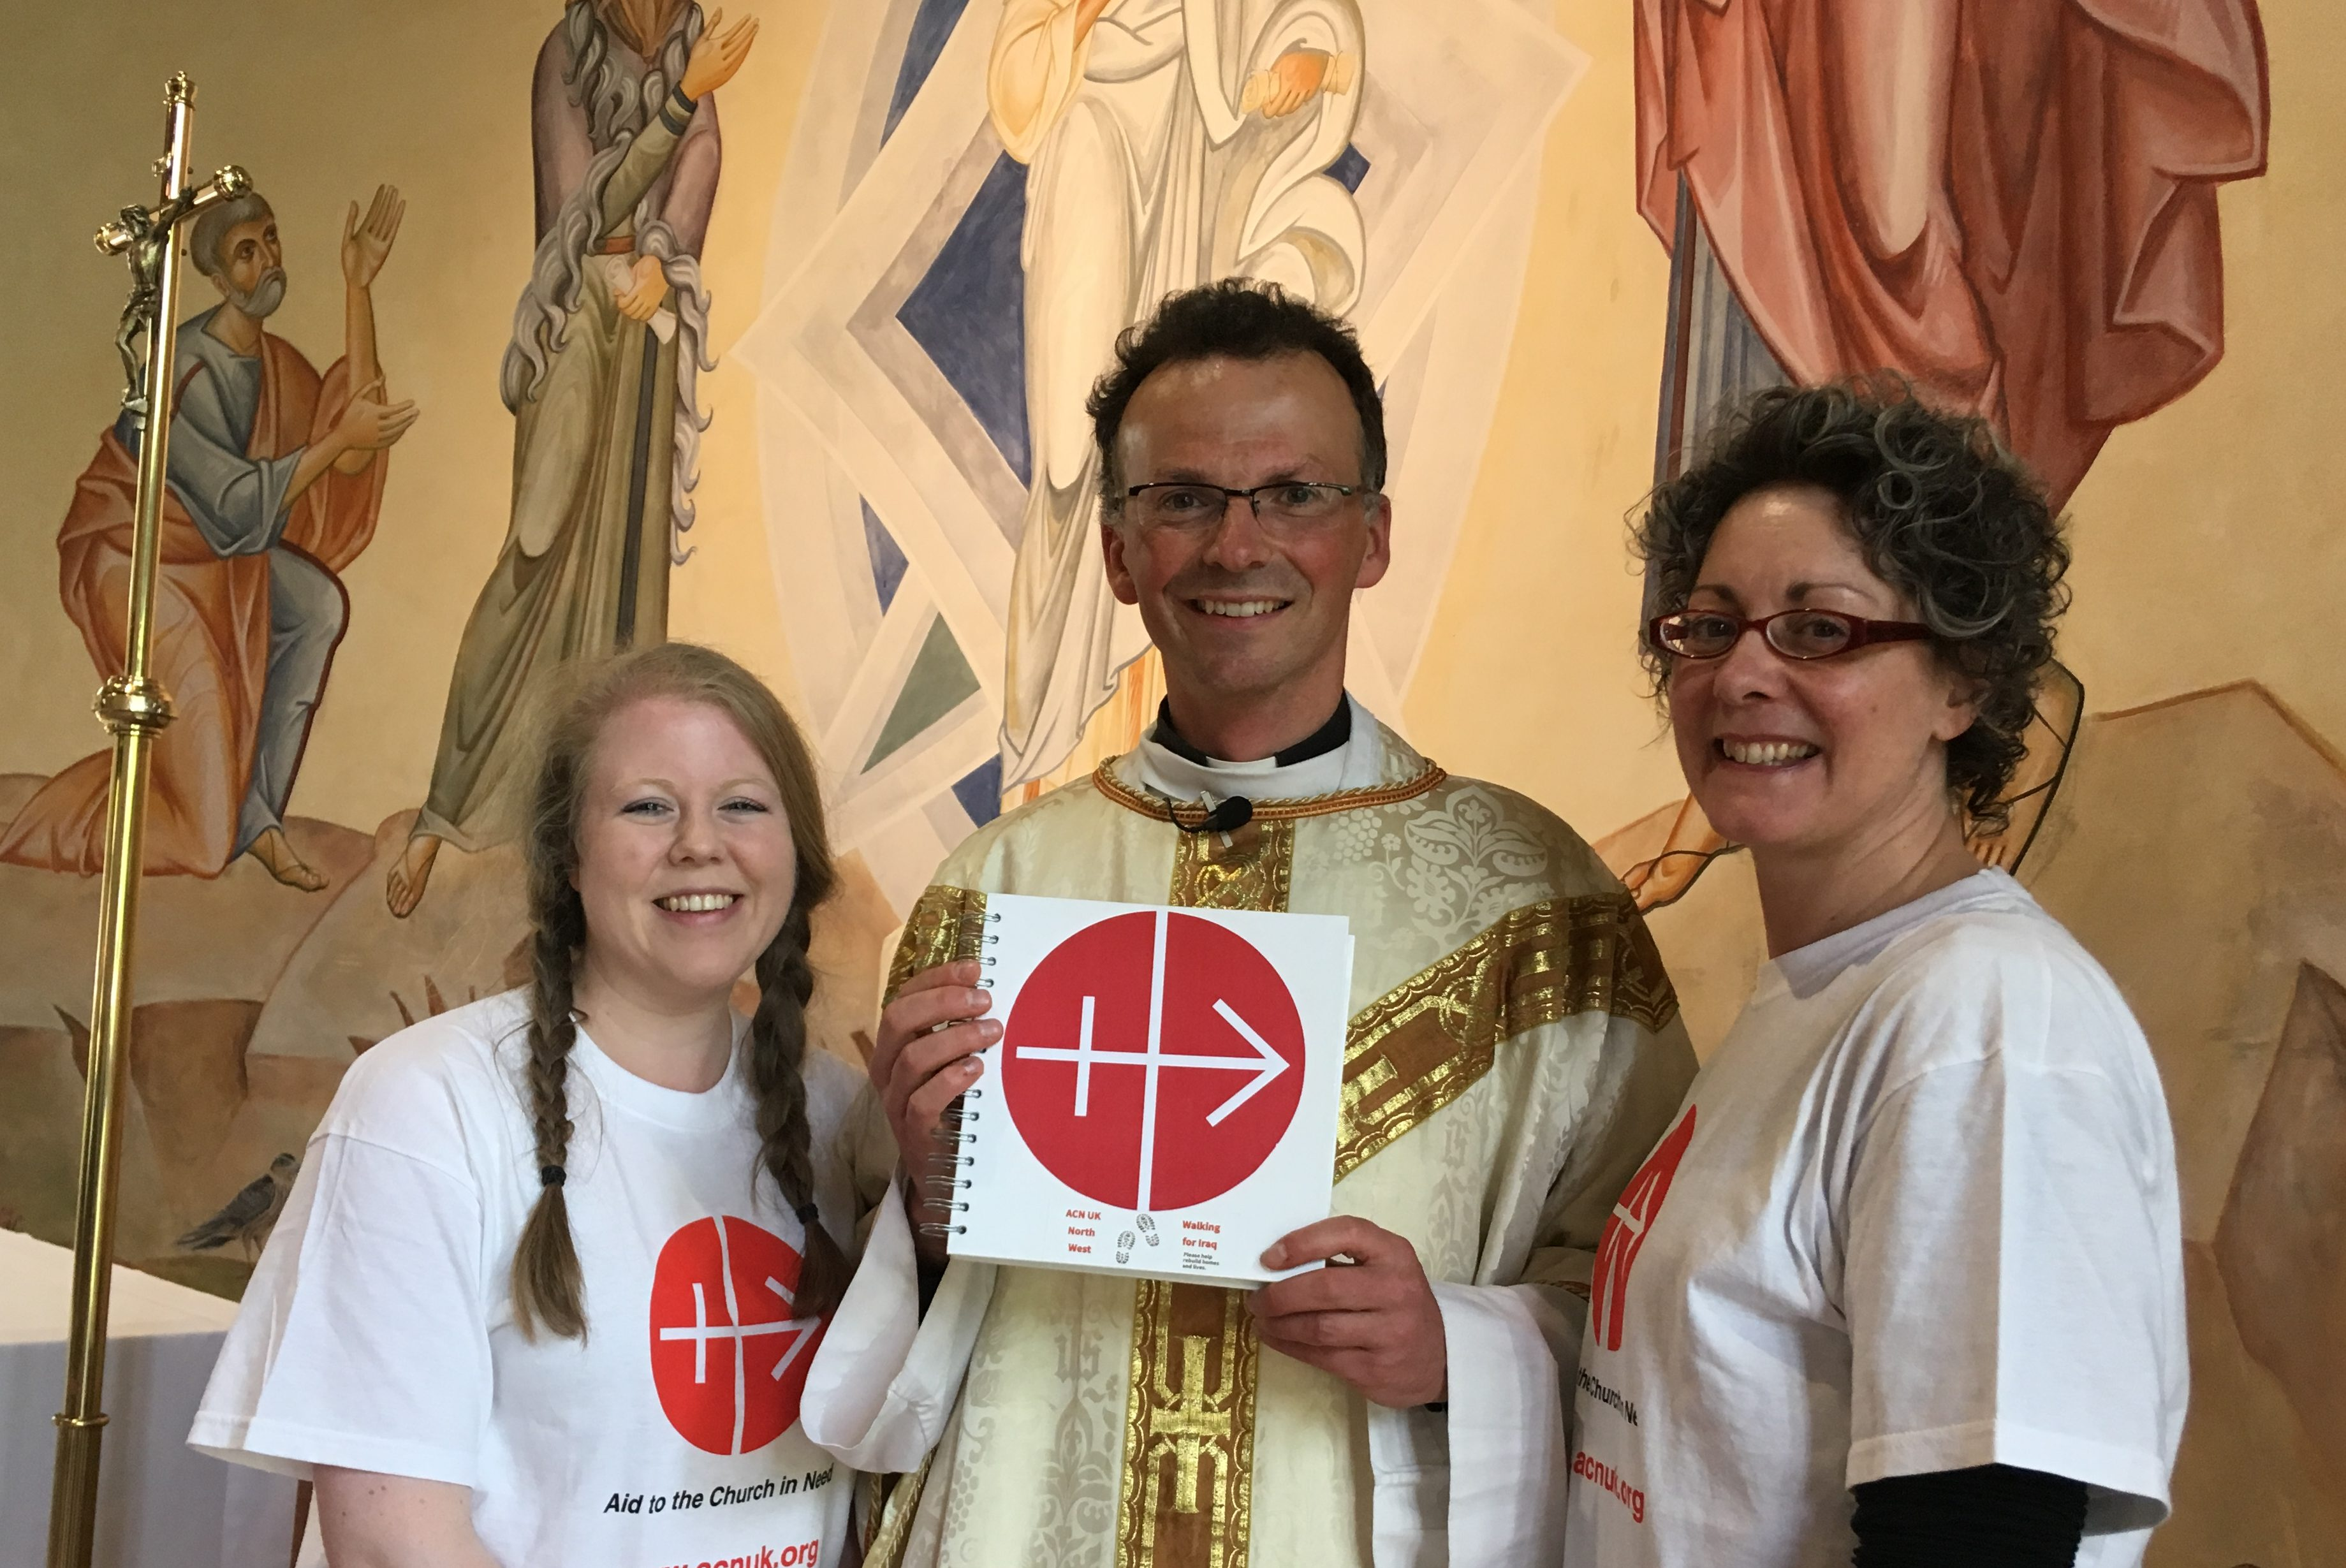 Father Philip Conner welcomes Bridget (left) and Caroline to the Catholic Chaplaincy at Lancaster University (© Aid to the Church in Need)